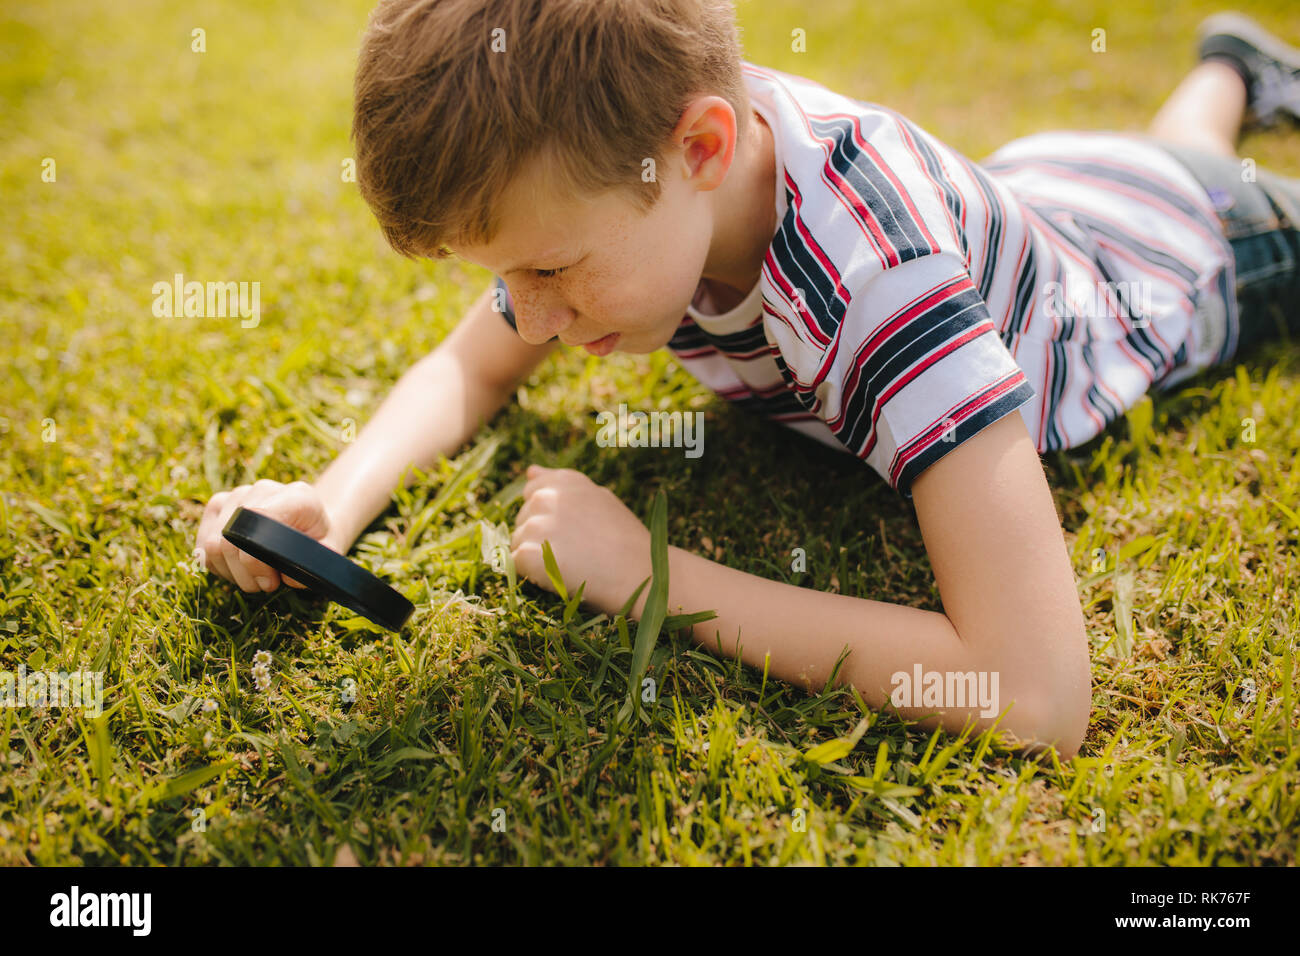 Caucasian boy exploring garden grass with his magnifier. Young boy looking through magnifying glass at the grass. - Stock Image